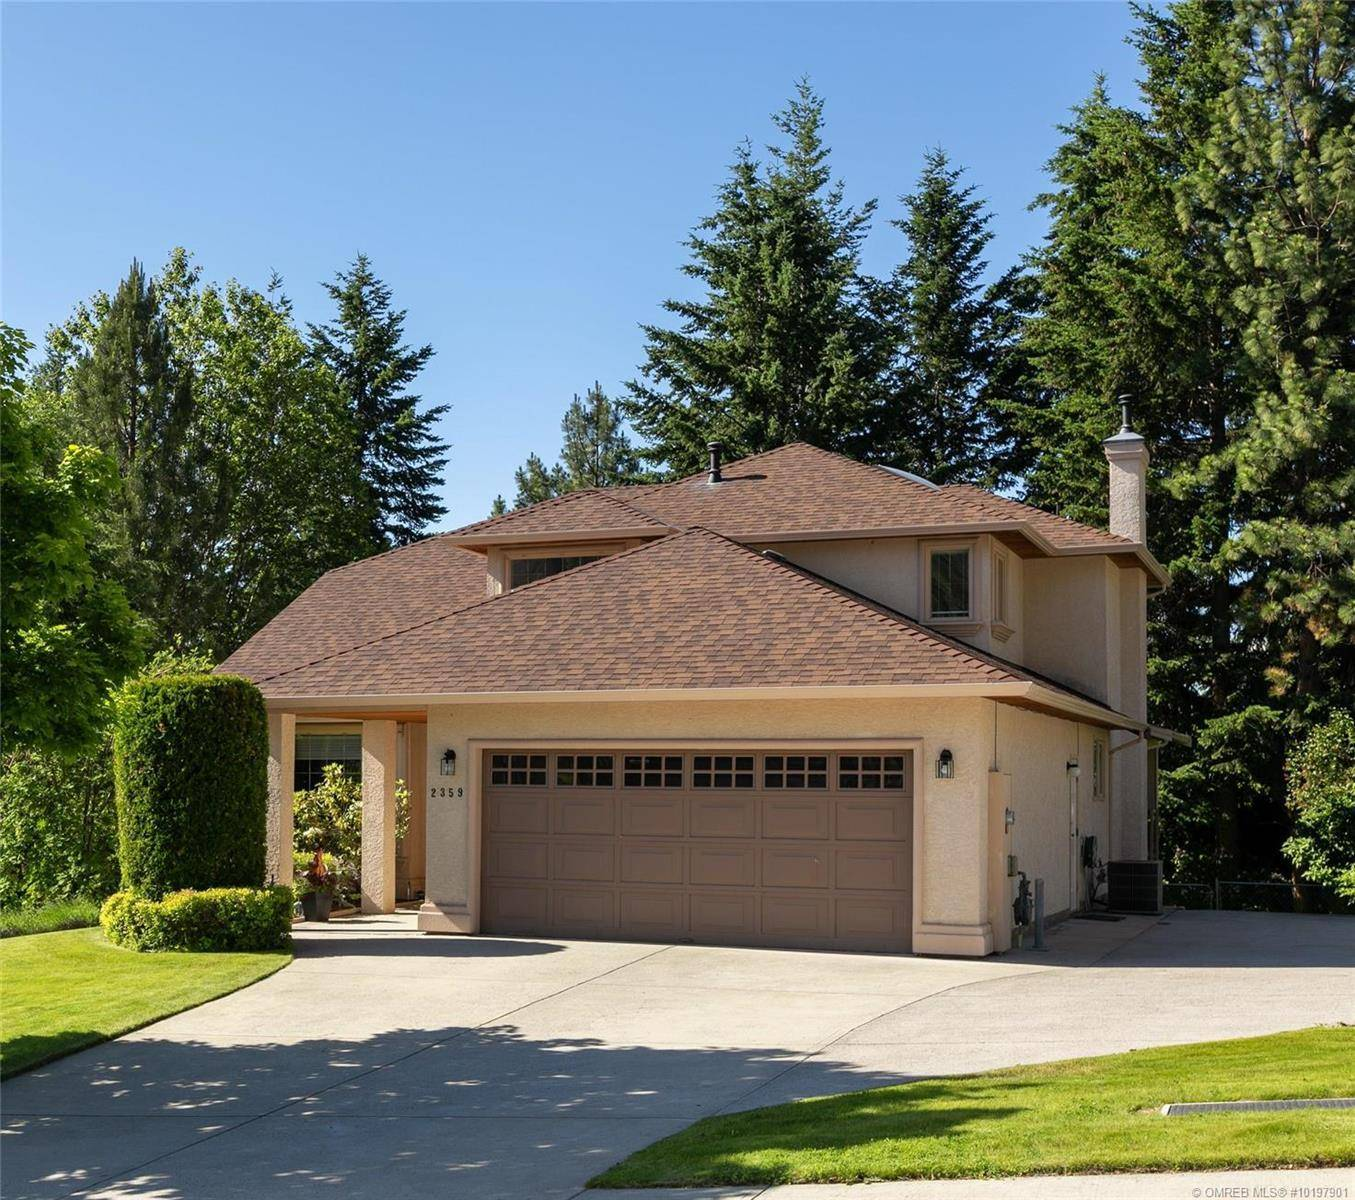 House for sale at 2359 Shannon Woods Dr West Kelowna British Columbia - MLS: 10197901